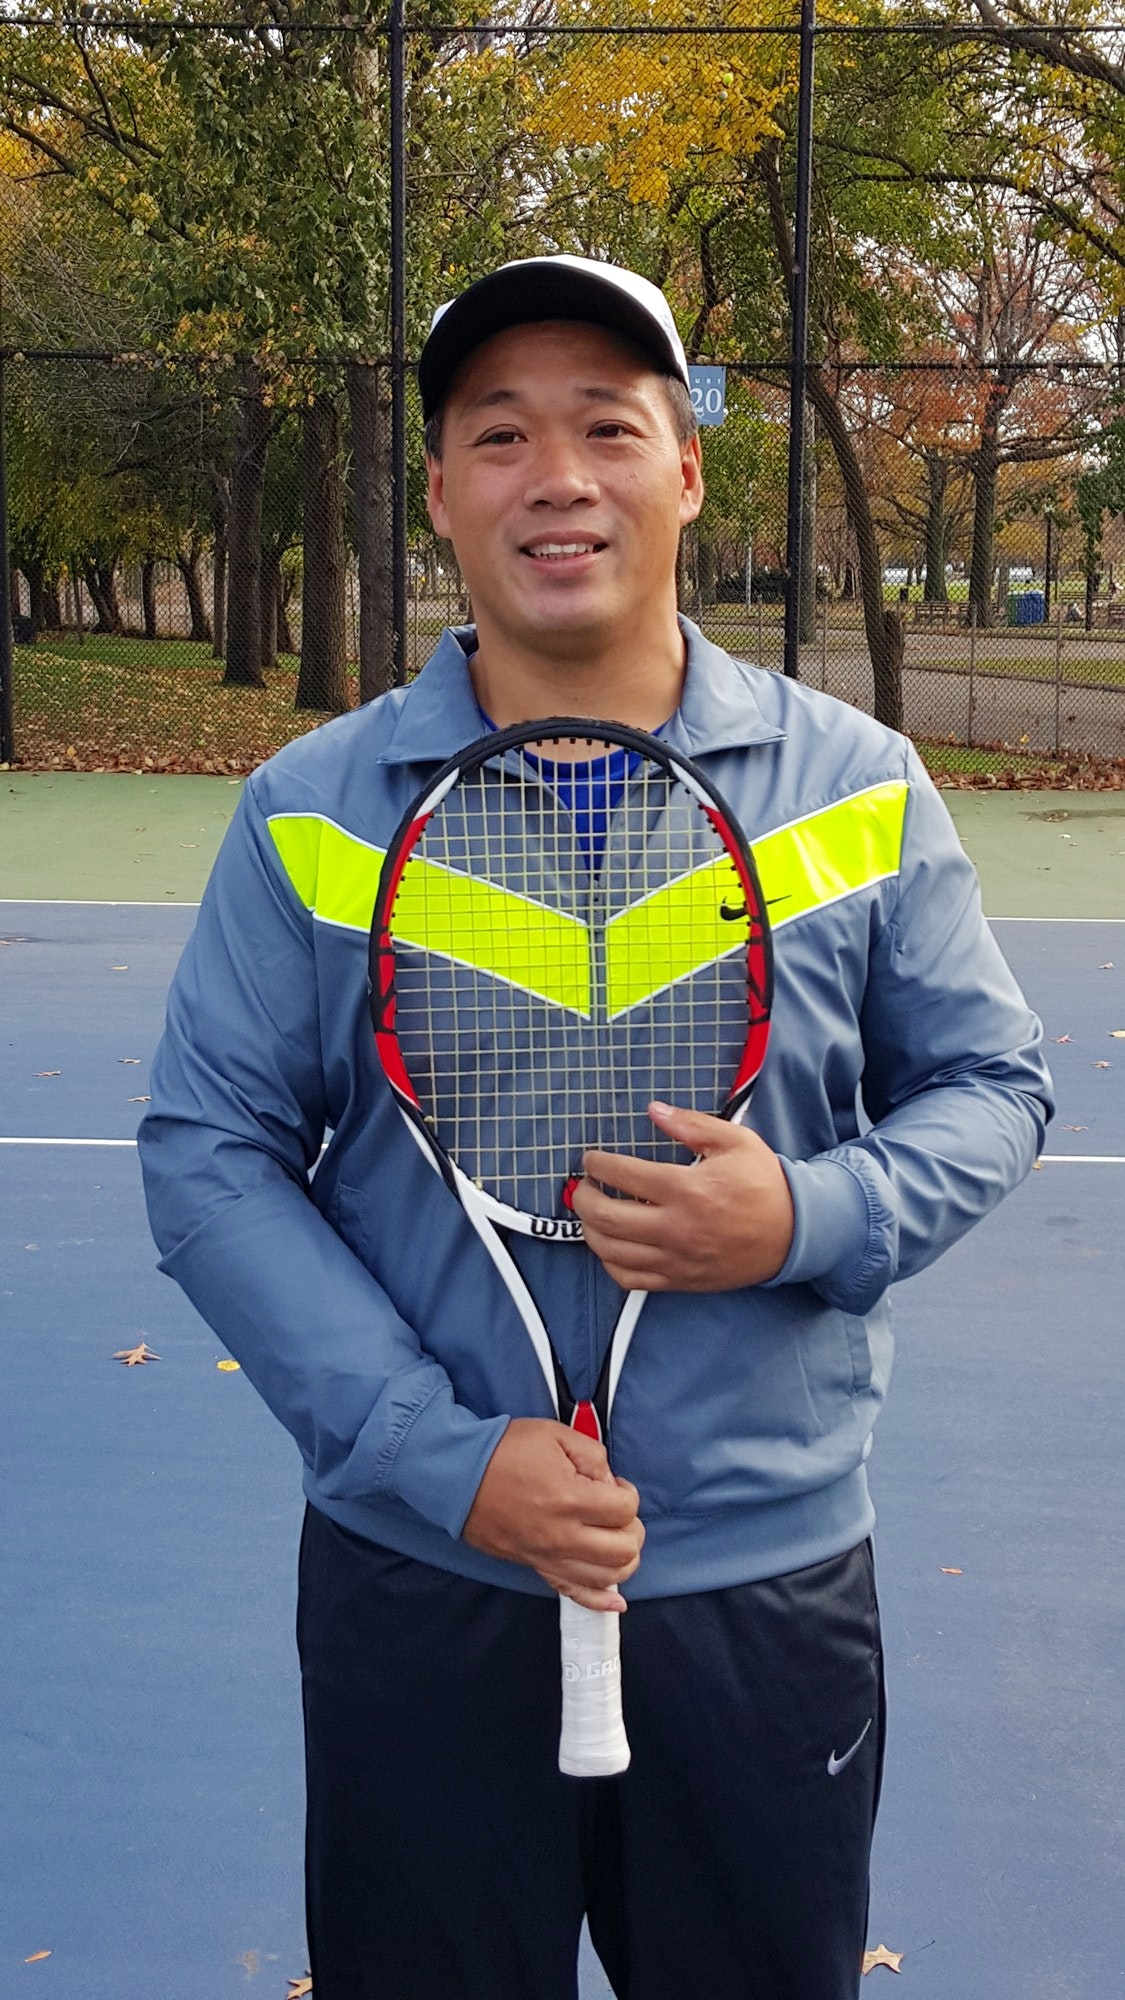 Warren F. teaches tennis lessons in Oakland Gardens, NY